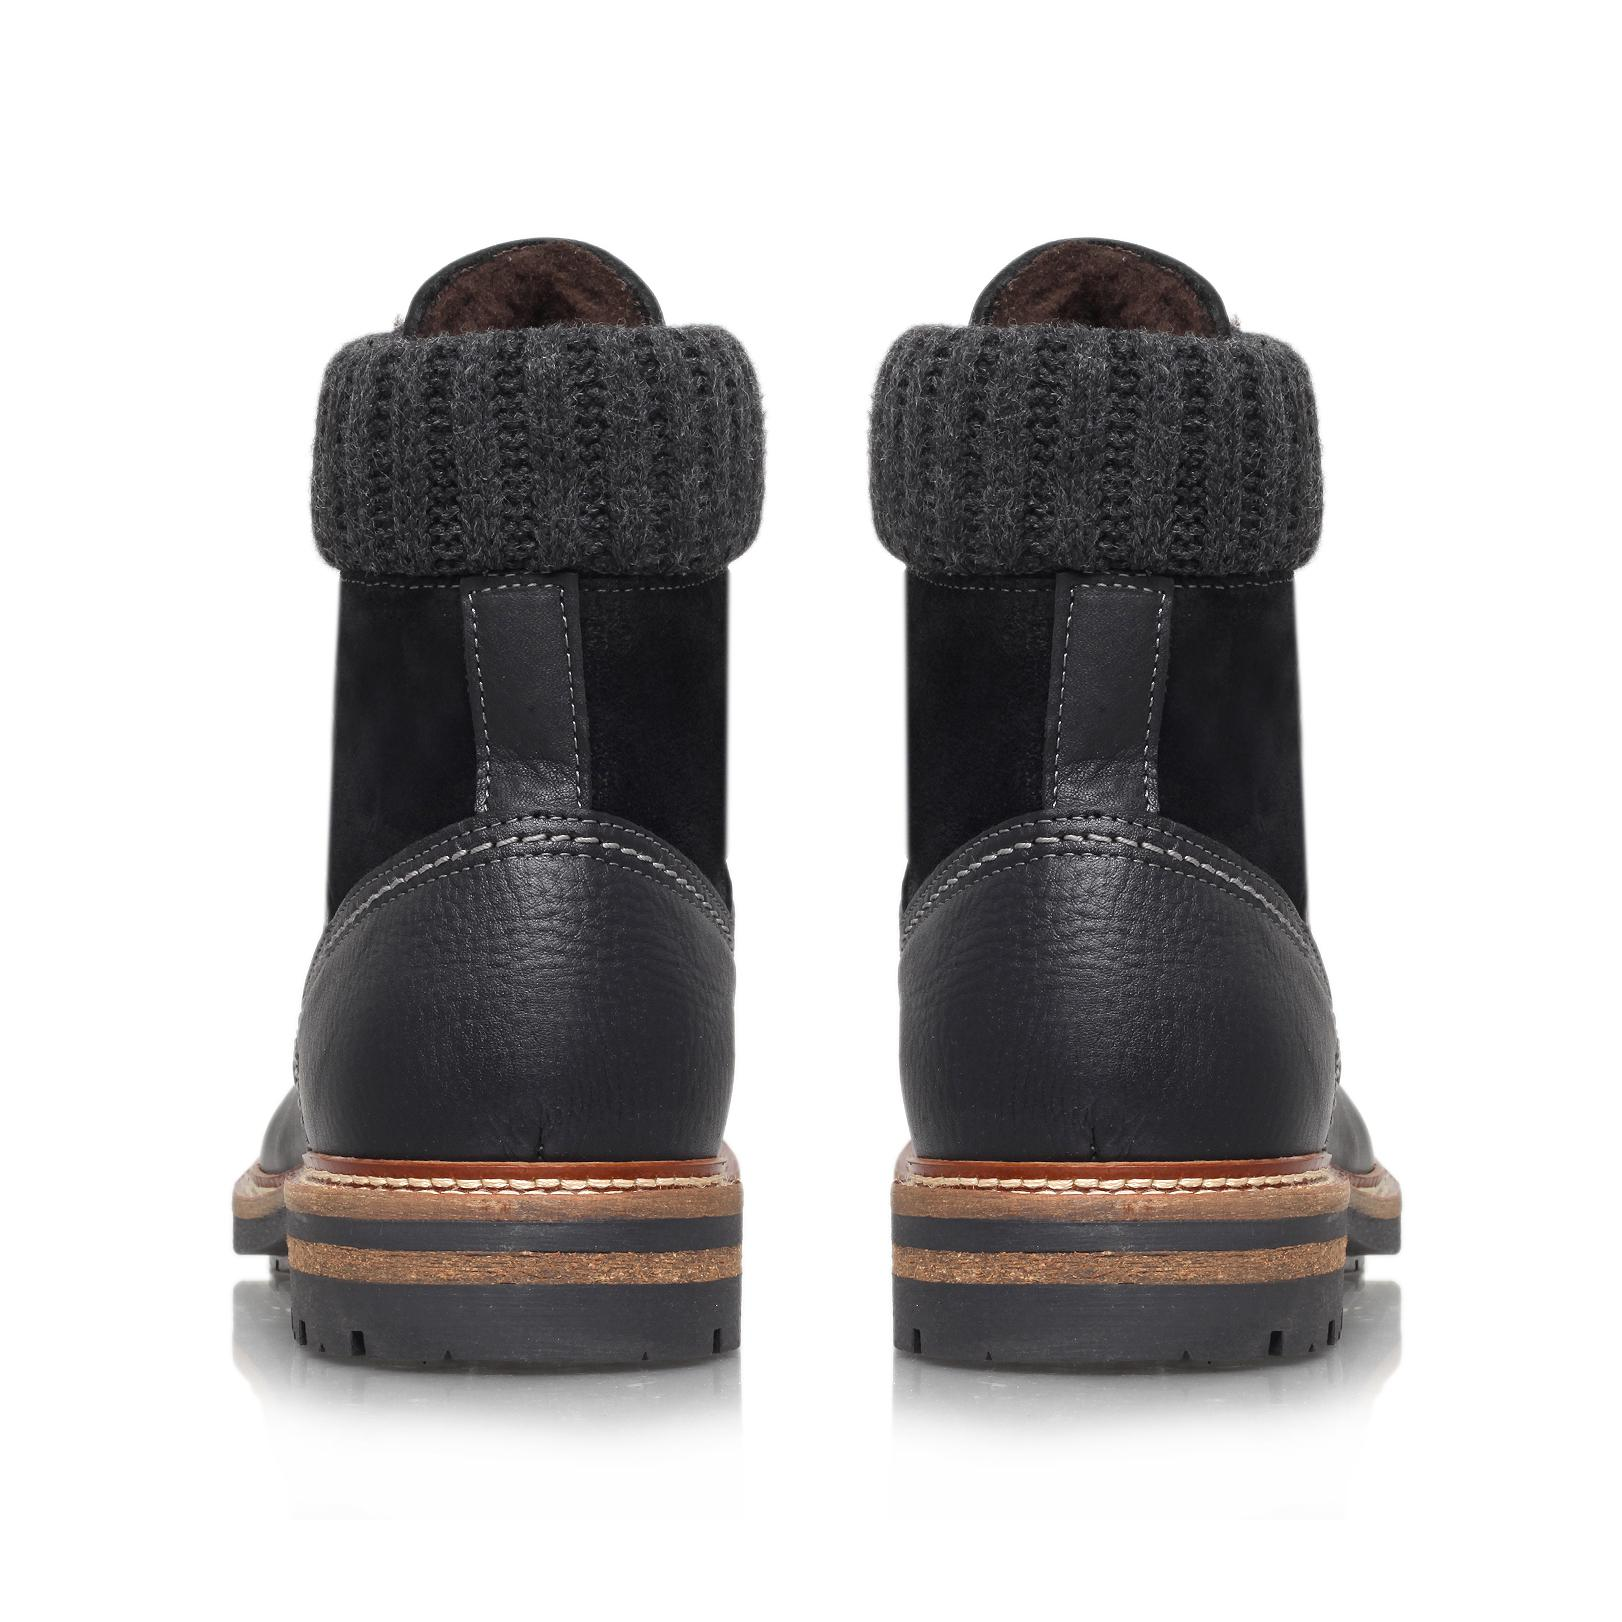 KG by Kurt Geiger Leather New Hampshire in Black for Men